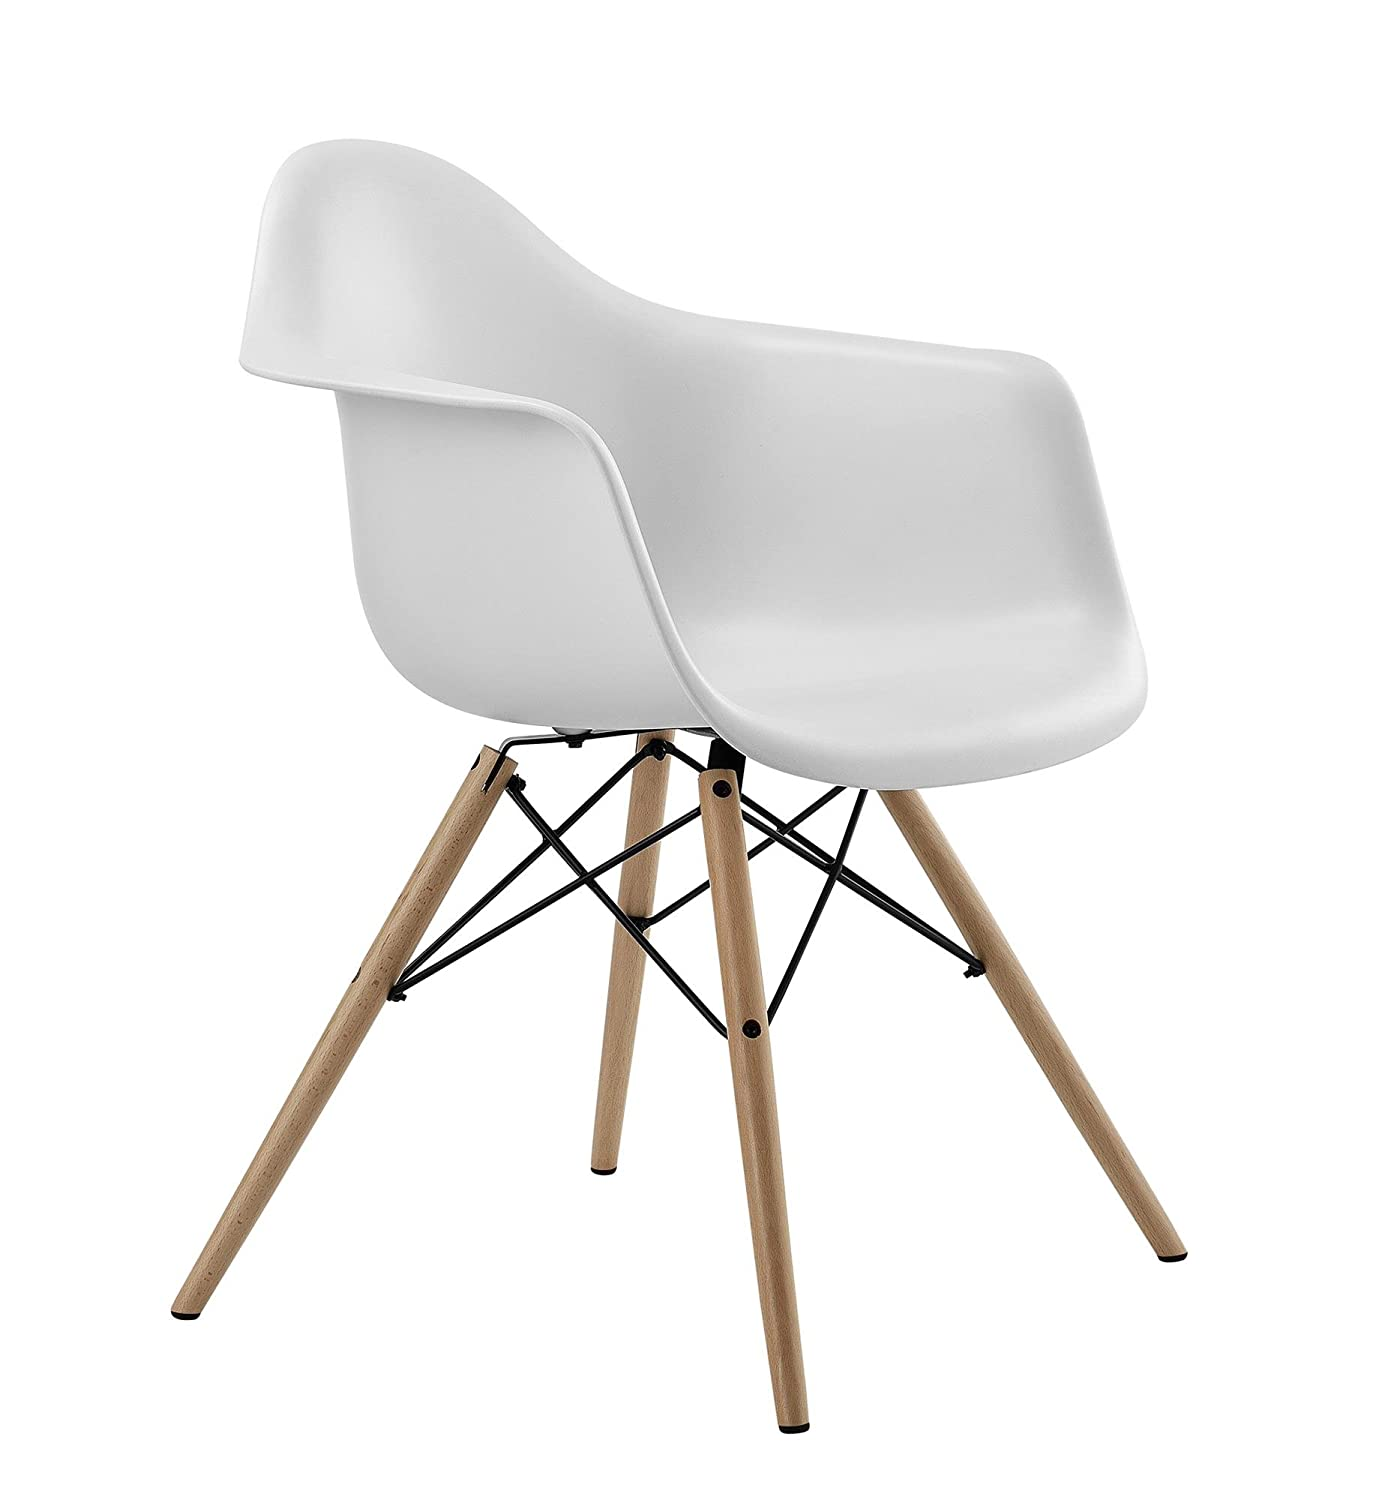 Amazon com dhp c013702 mid century modern chair with molded arms and wood legs white chairs